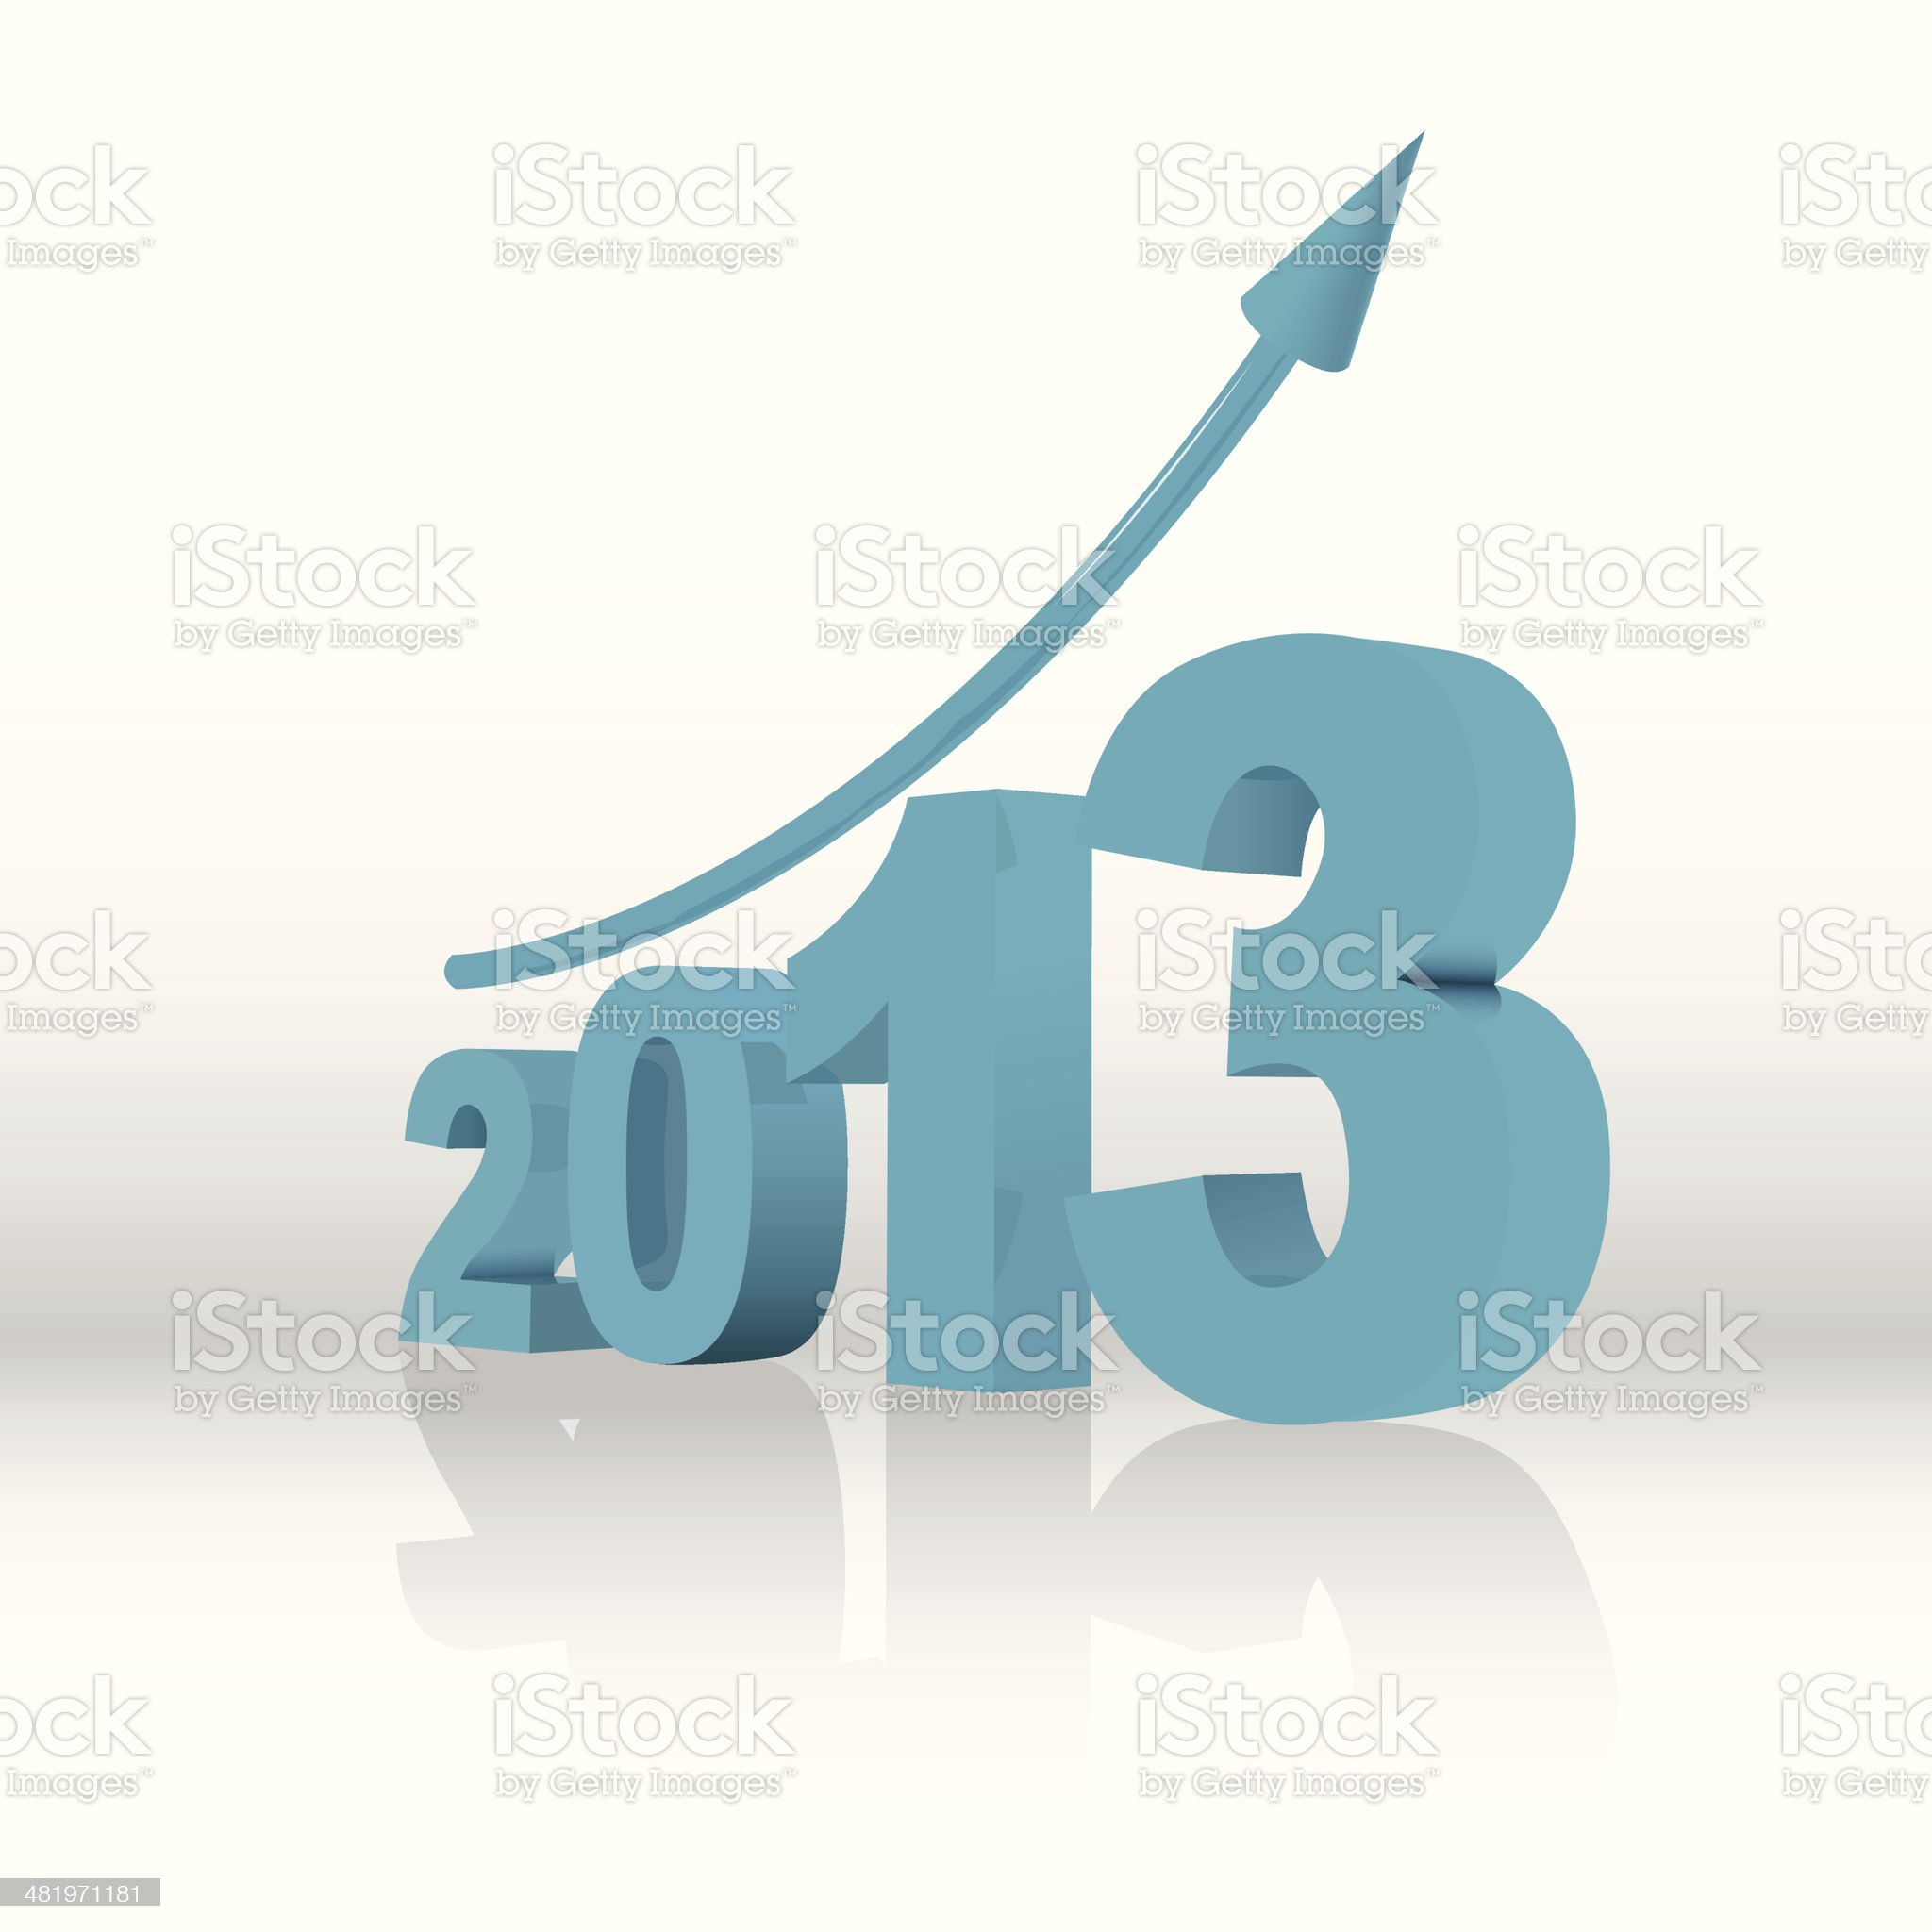 graph for 2013 royalty-free stock vector art